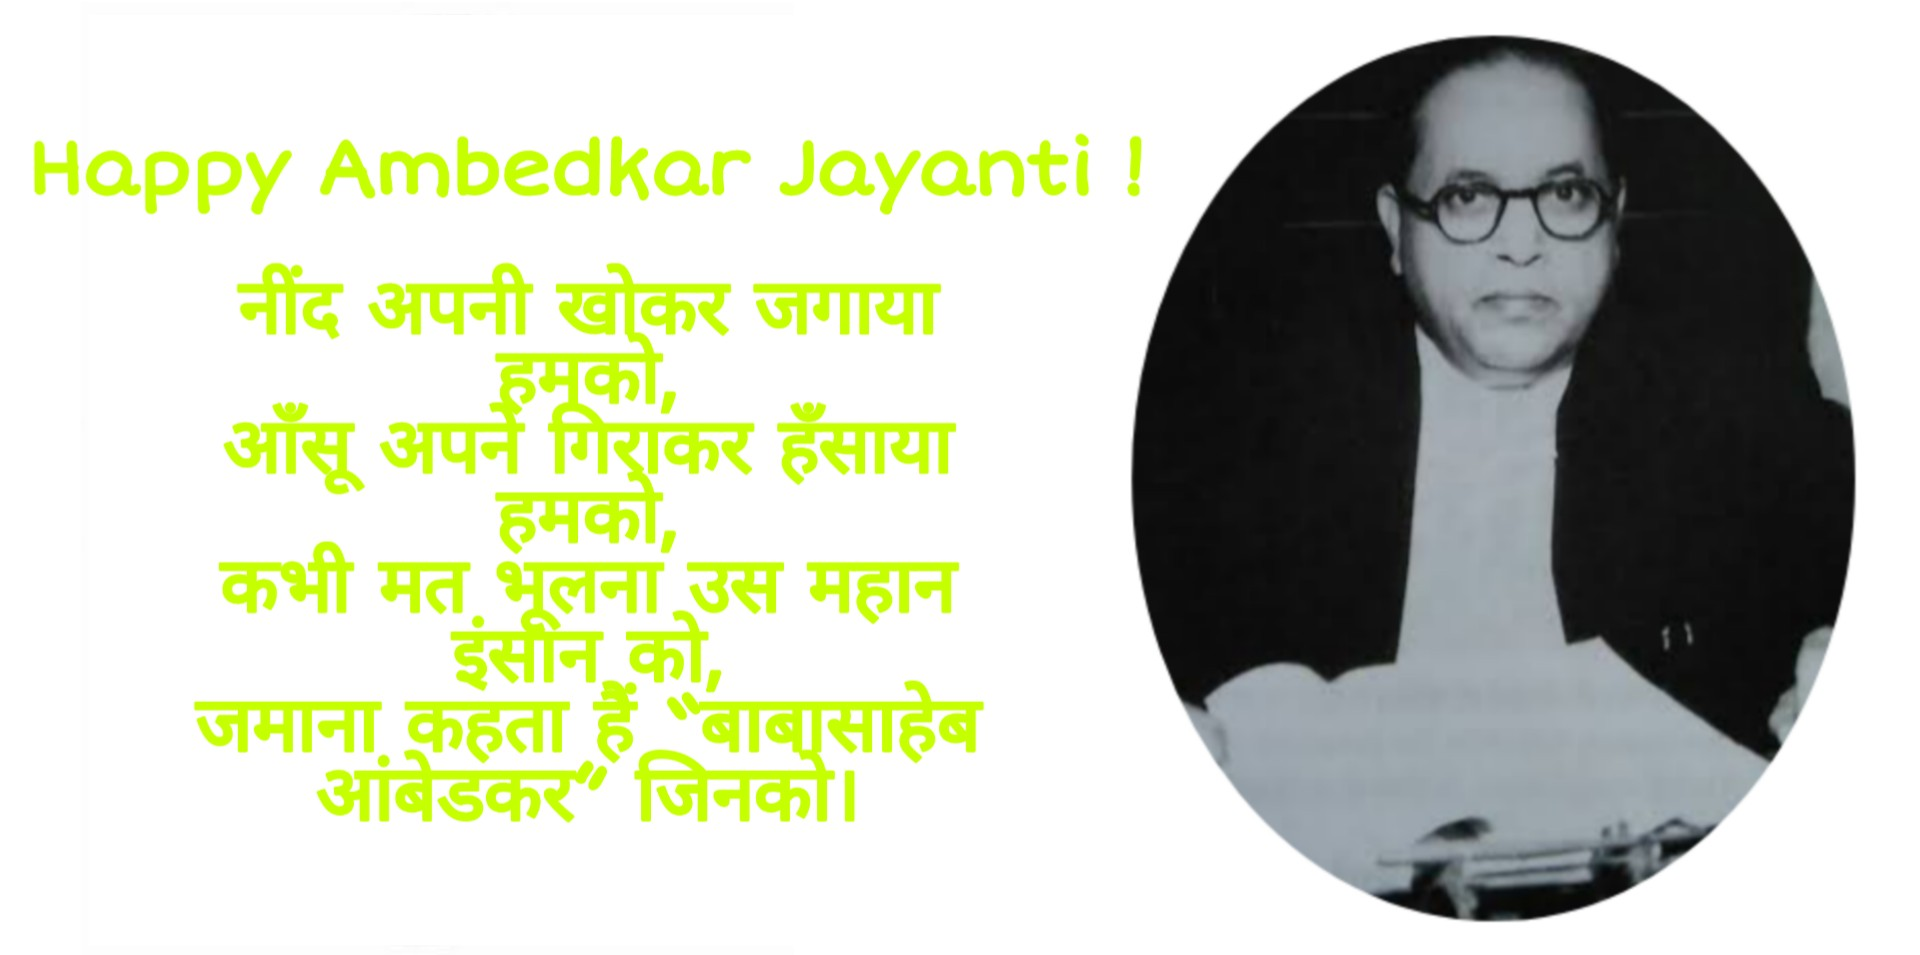 Ambedkar Jayanti Wishes and Greetings, and Significance | VoxyTalksy